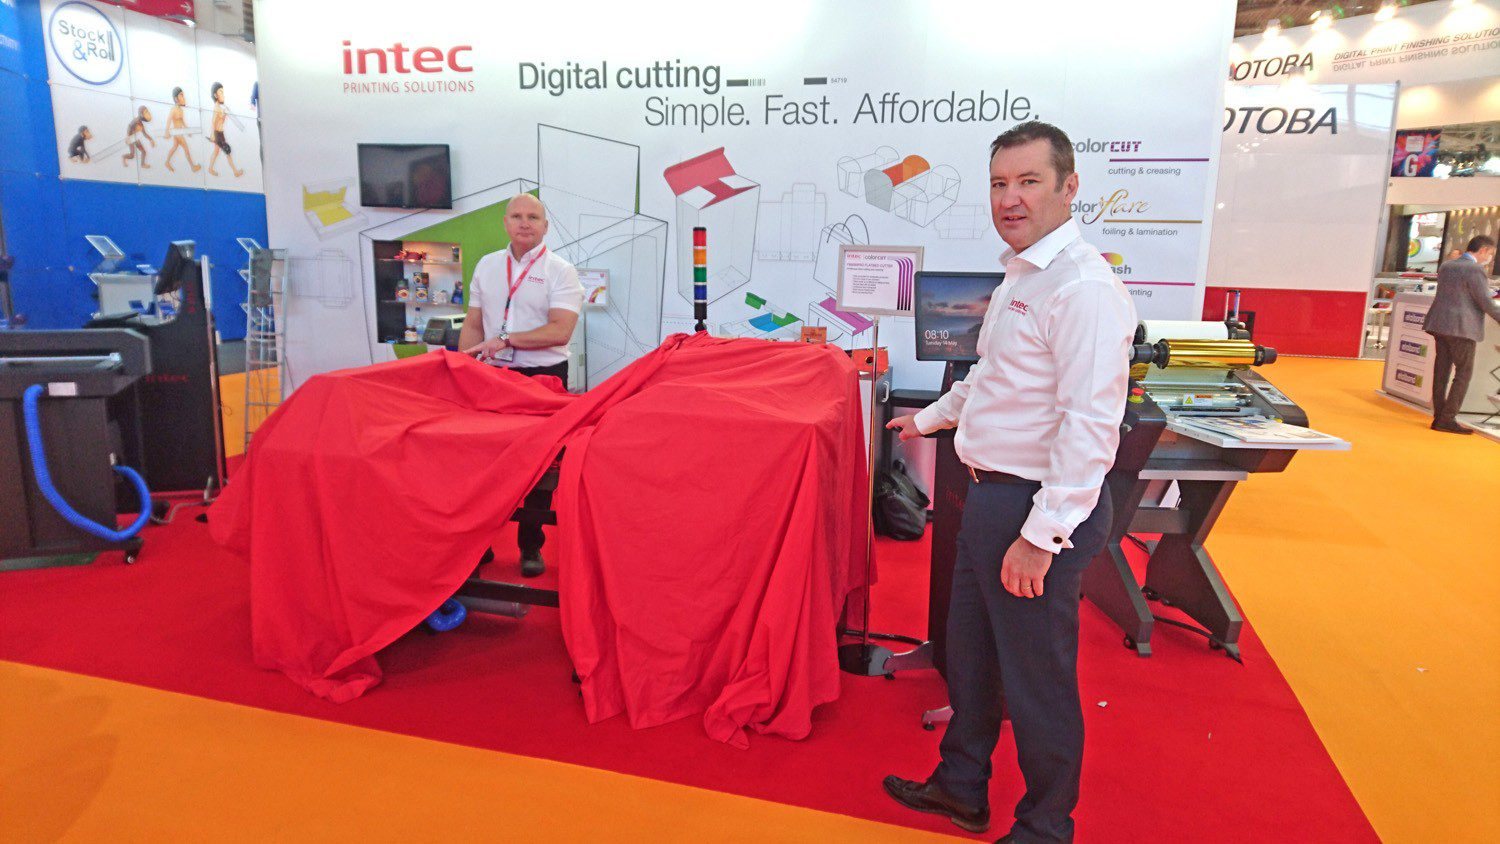 FB8000PRO Unveiled at FESPA '19